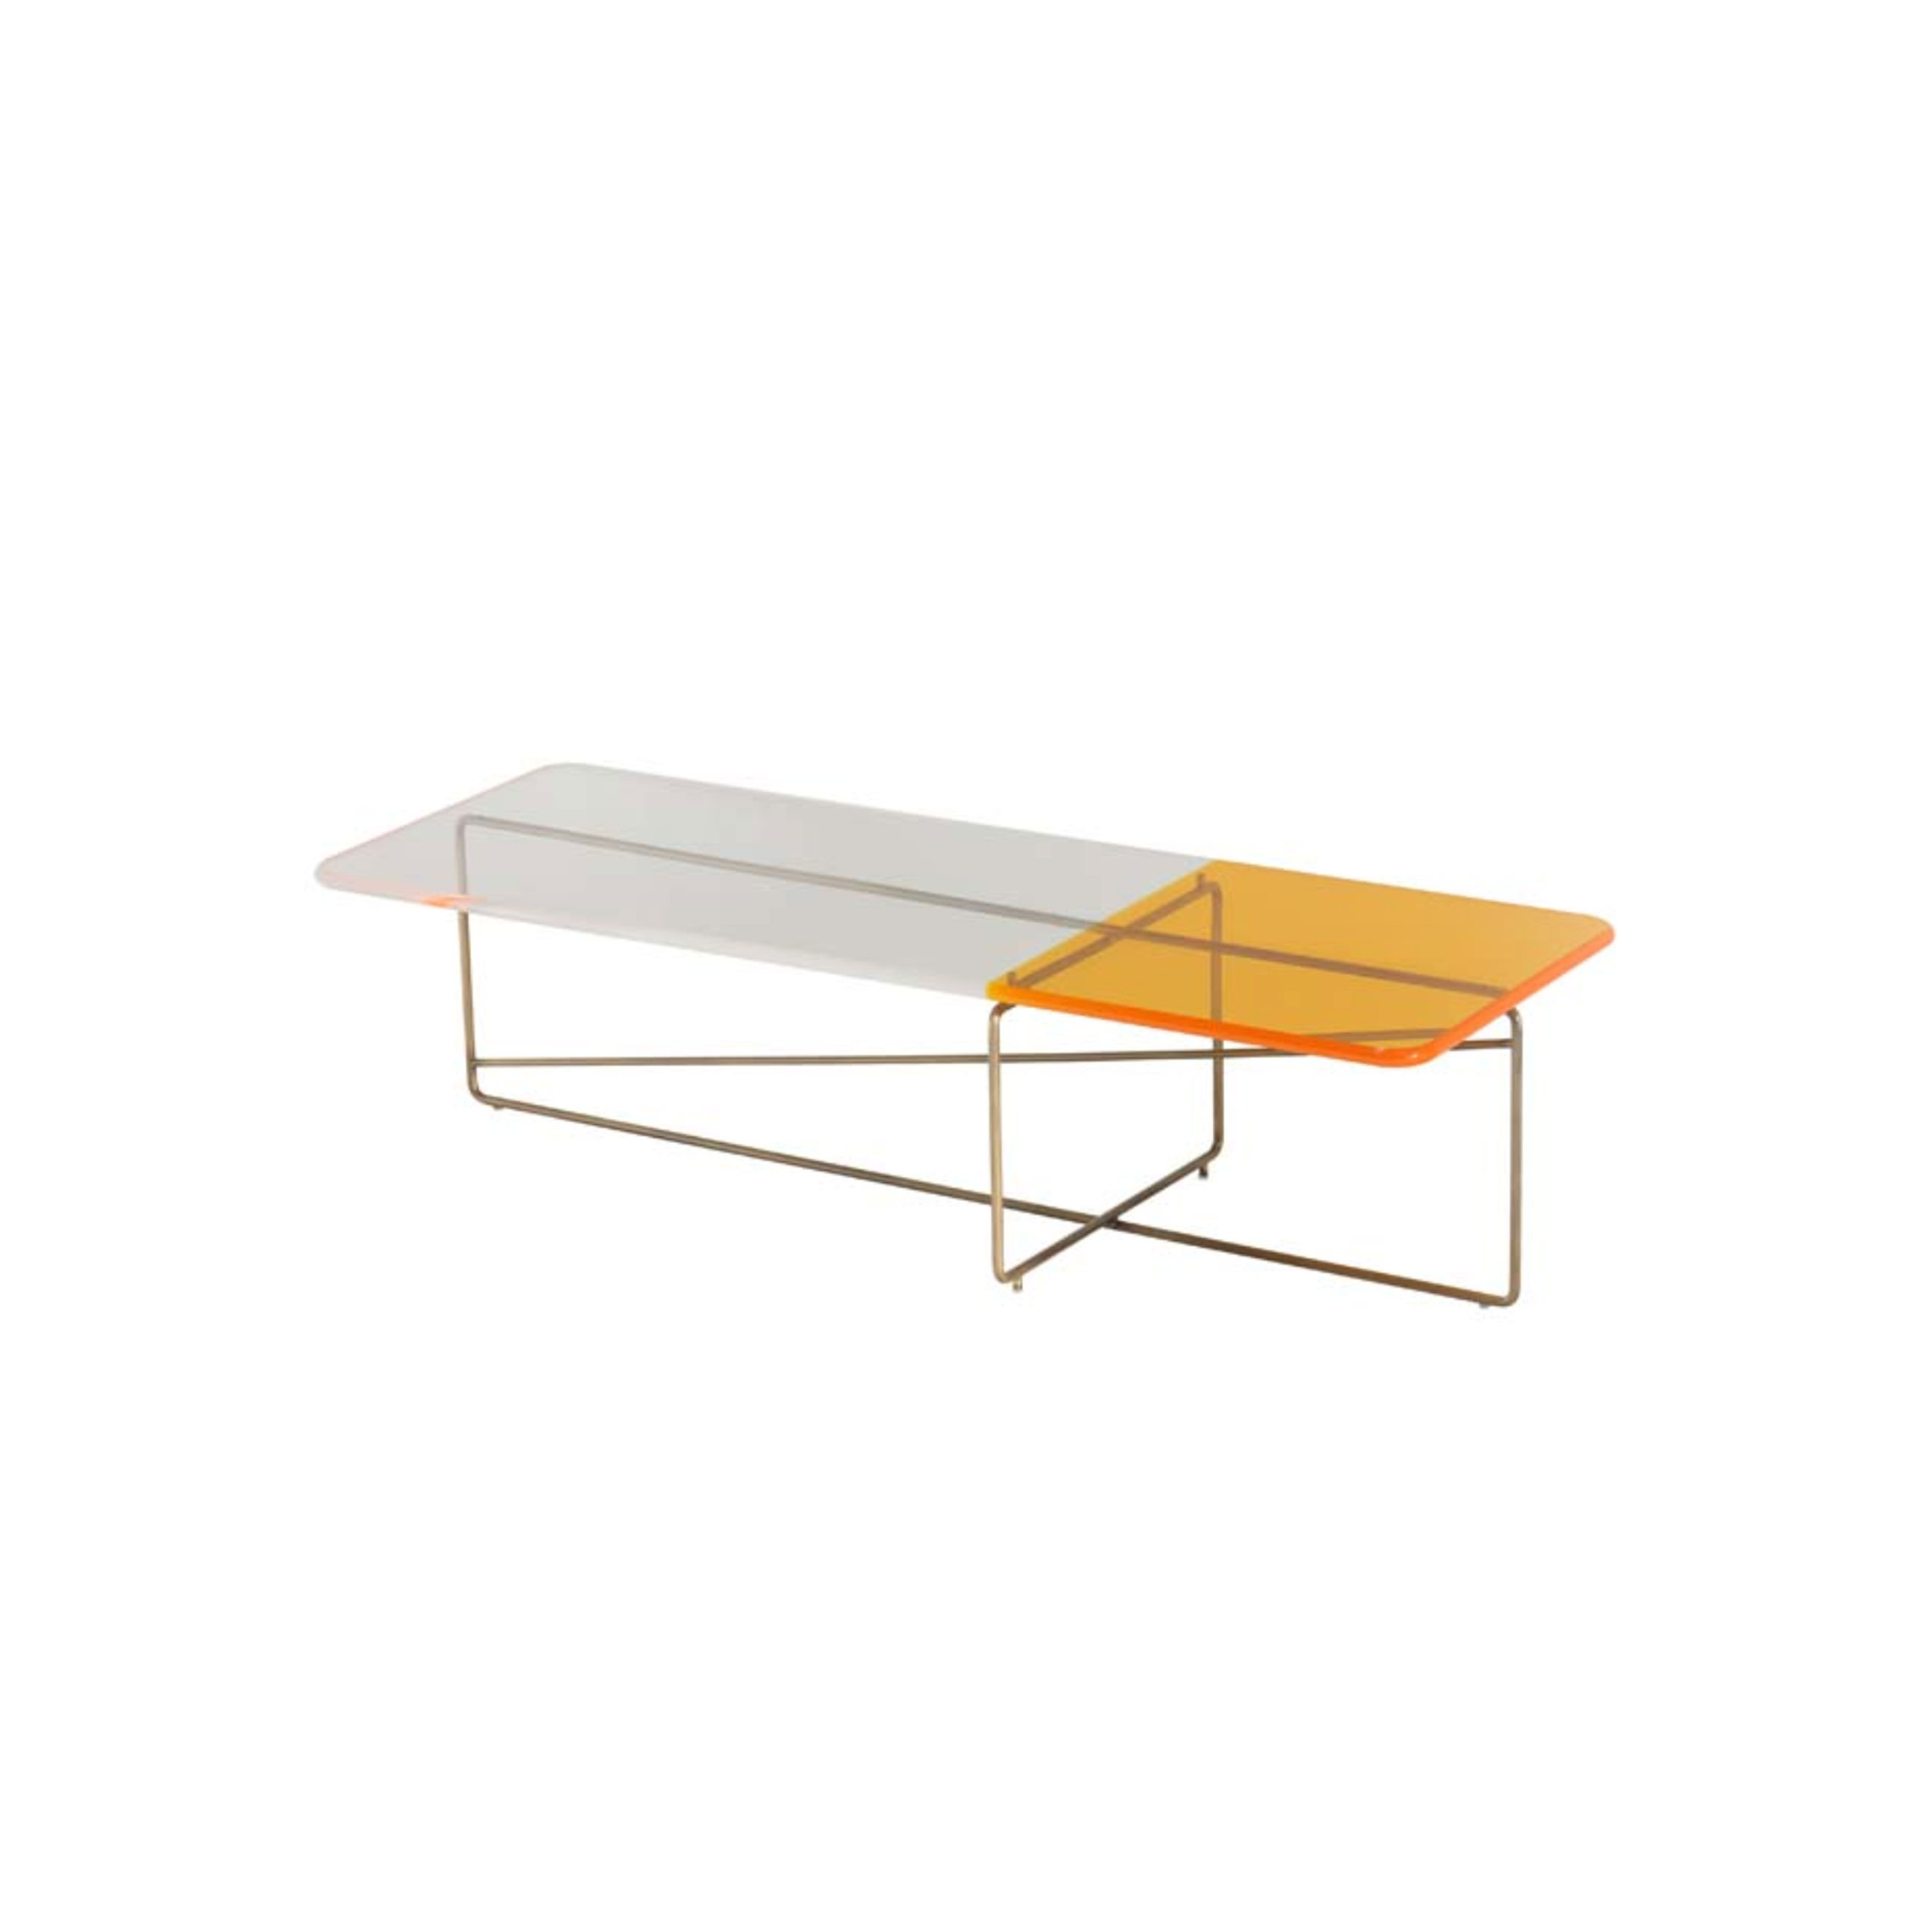 """Ametrino 01 Coffee Table - Side table with brass structures and top in bicolored methacrylate. Ametrino is part of Empirica Family. """"A creative process grown with the experience. There is a real connection between the human being and his creations, a chemical bond that is expressed through the unusual combination of elements that leads to an original and unexpected result. The Collection """"Empirica"""" is the result of a quick thought, an automatic gesture, a spontaneous sign, brass structures treated with special coating are mixed with methacrylate surfaces characterized by exclusive shades.""""  